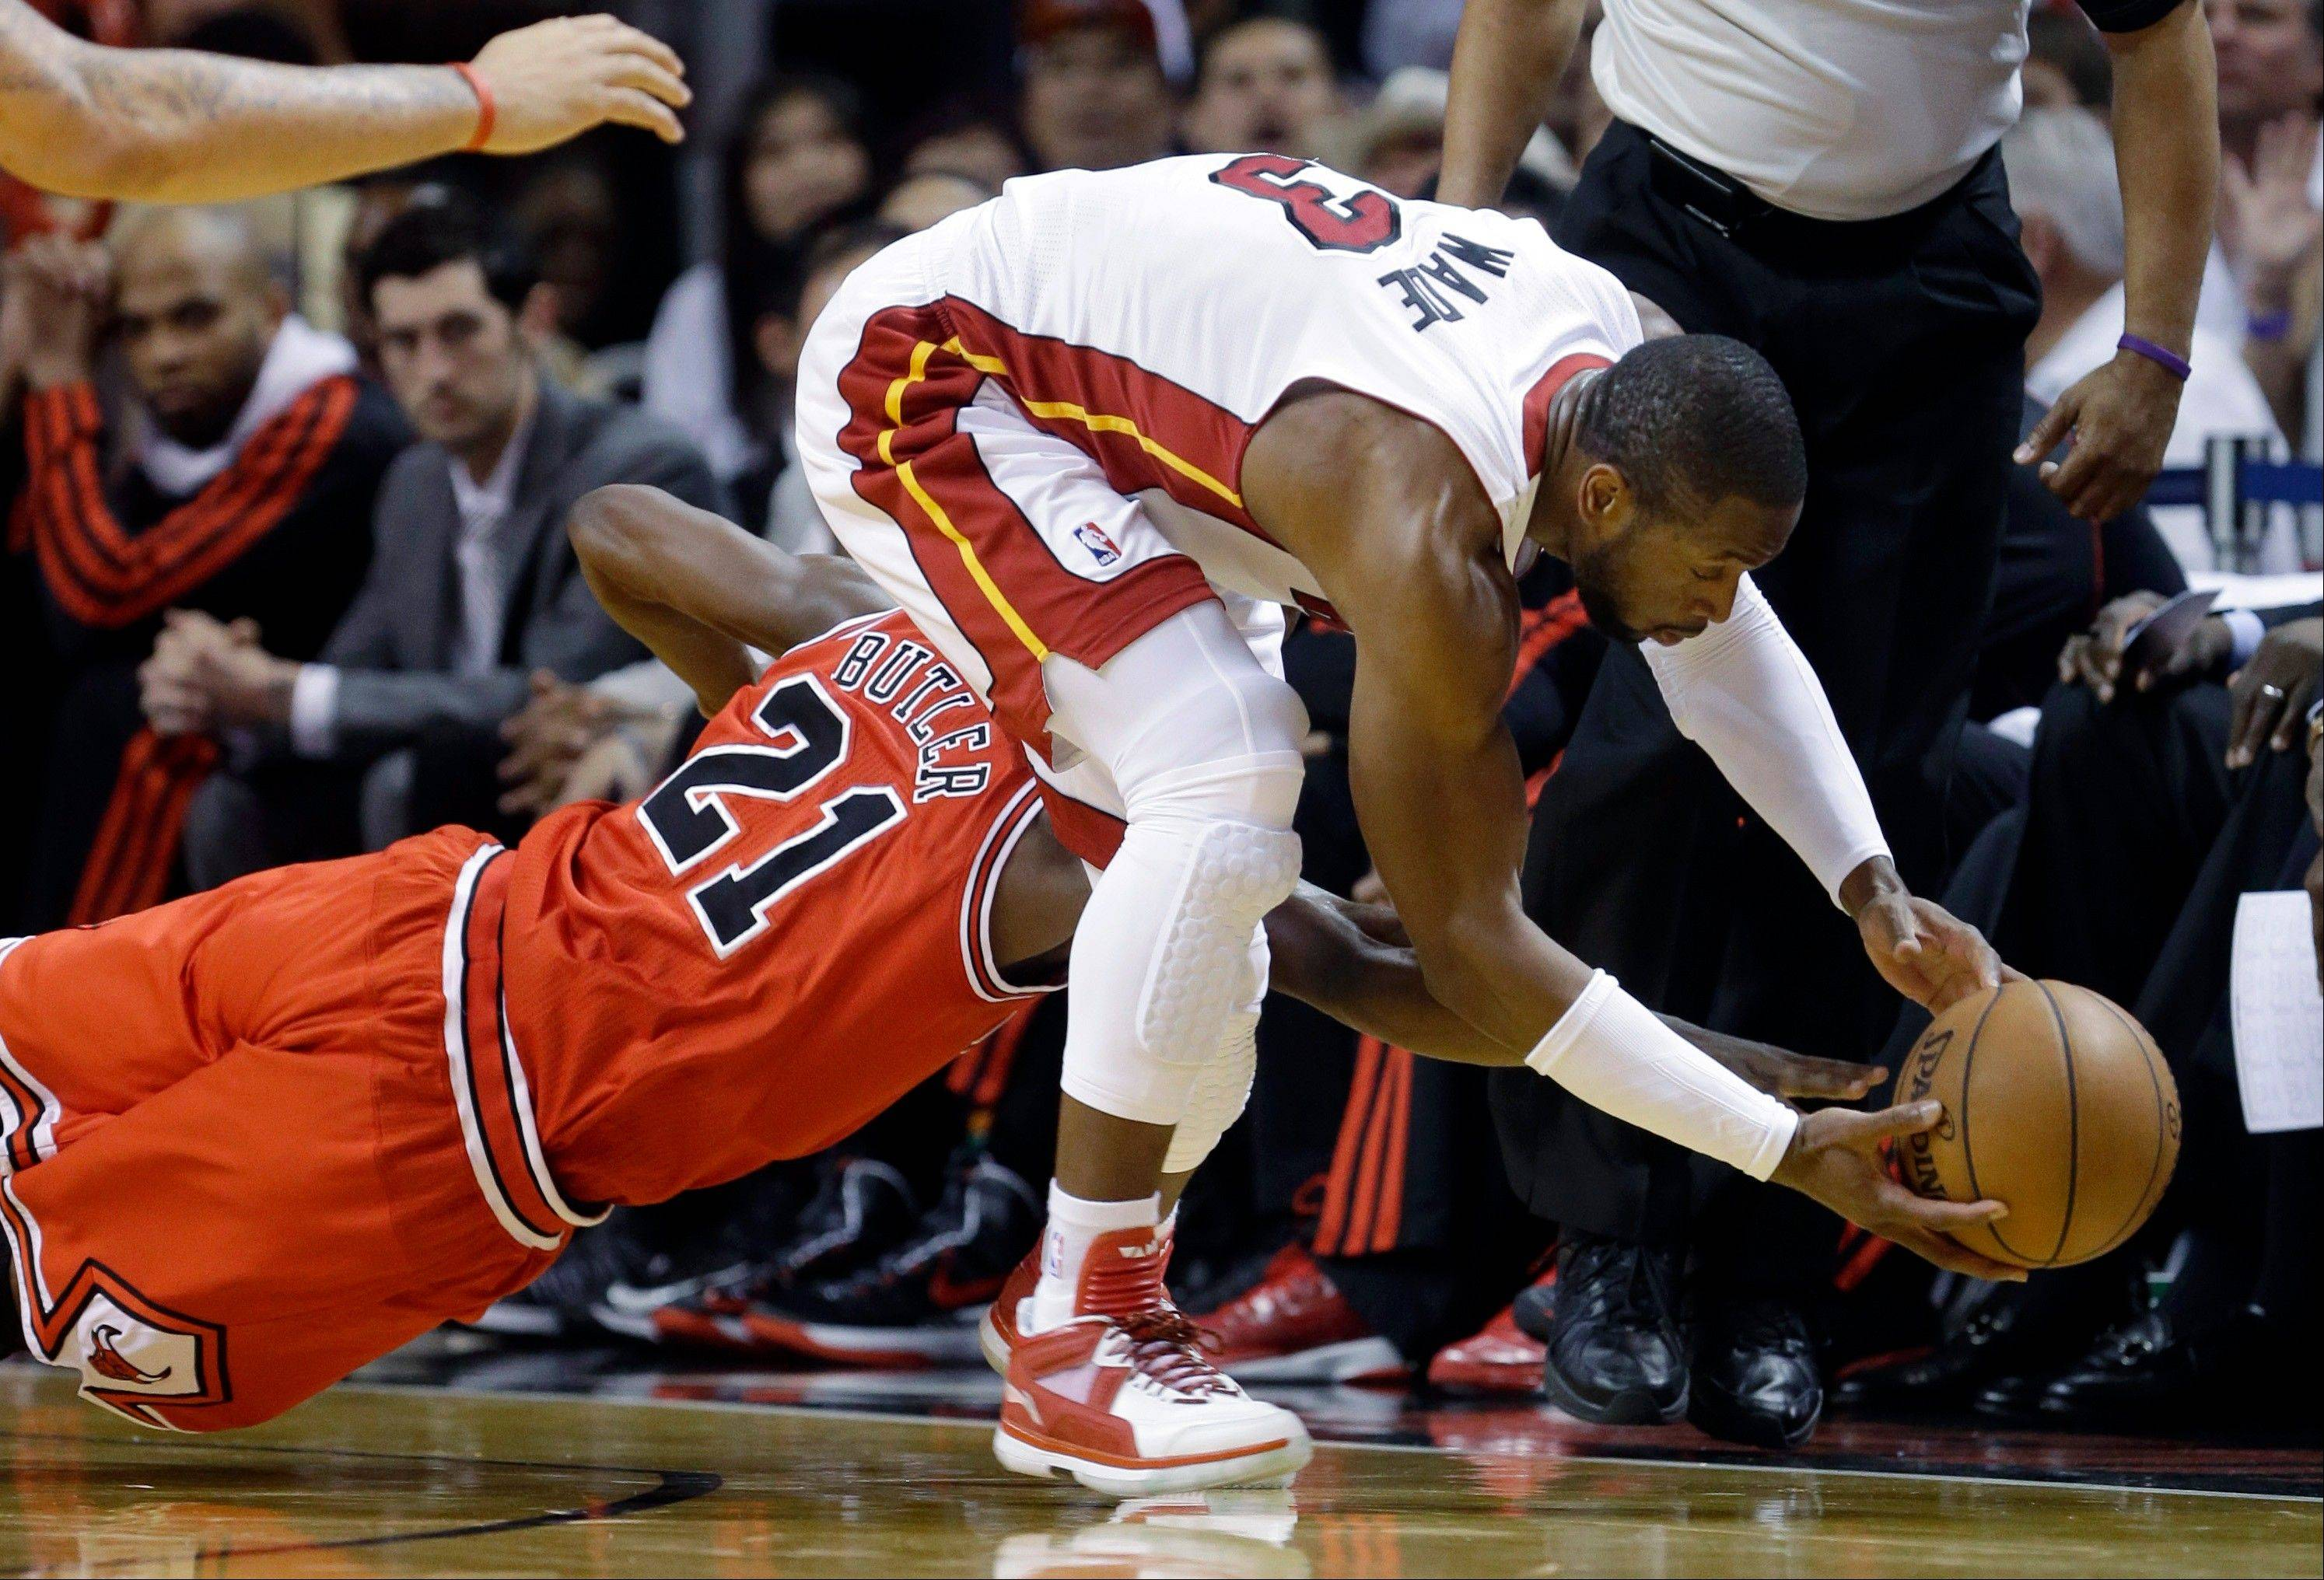 Miami Heat's Dwyane Wade (3) and Chicago Bulls' Jimmy Butler (21) go for a loose ball during the first half of Game 5 of an NBA basketball Eastern Conference semifinal, Wednesday, May 15, 2013, in Miami.